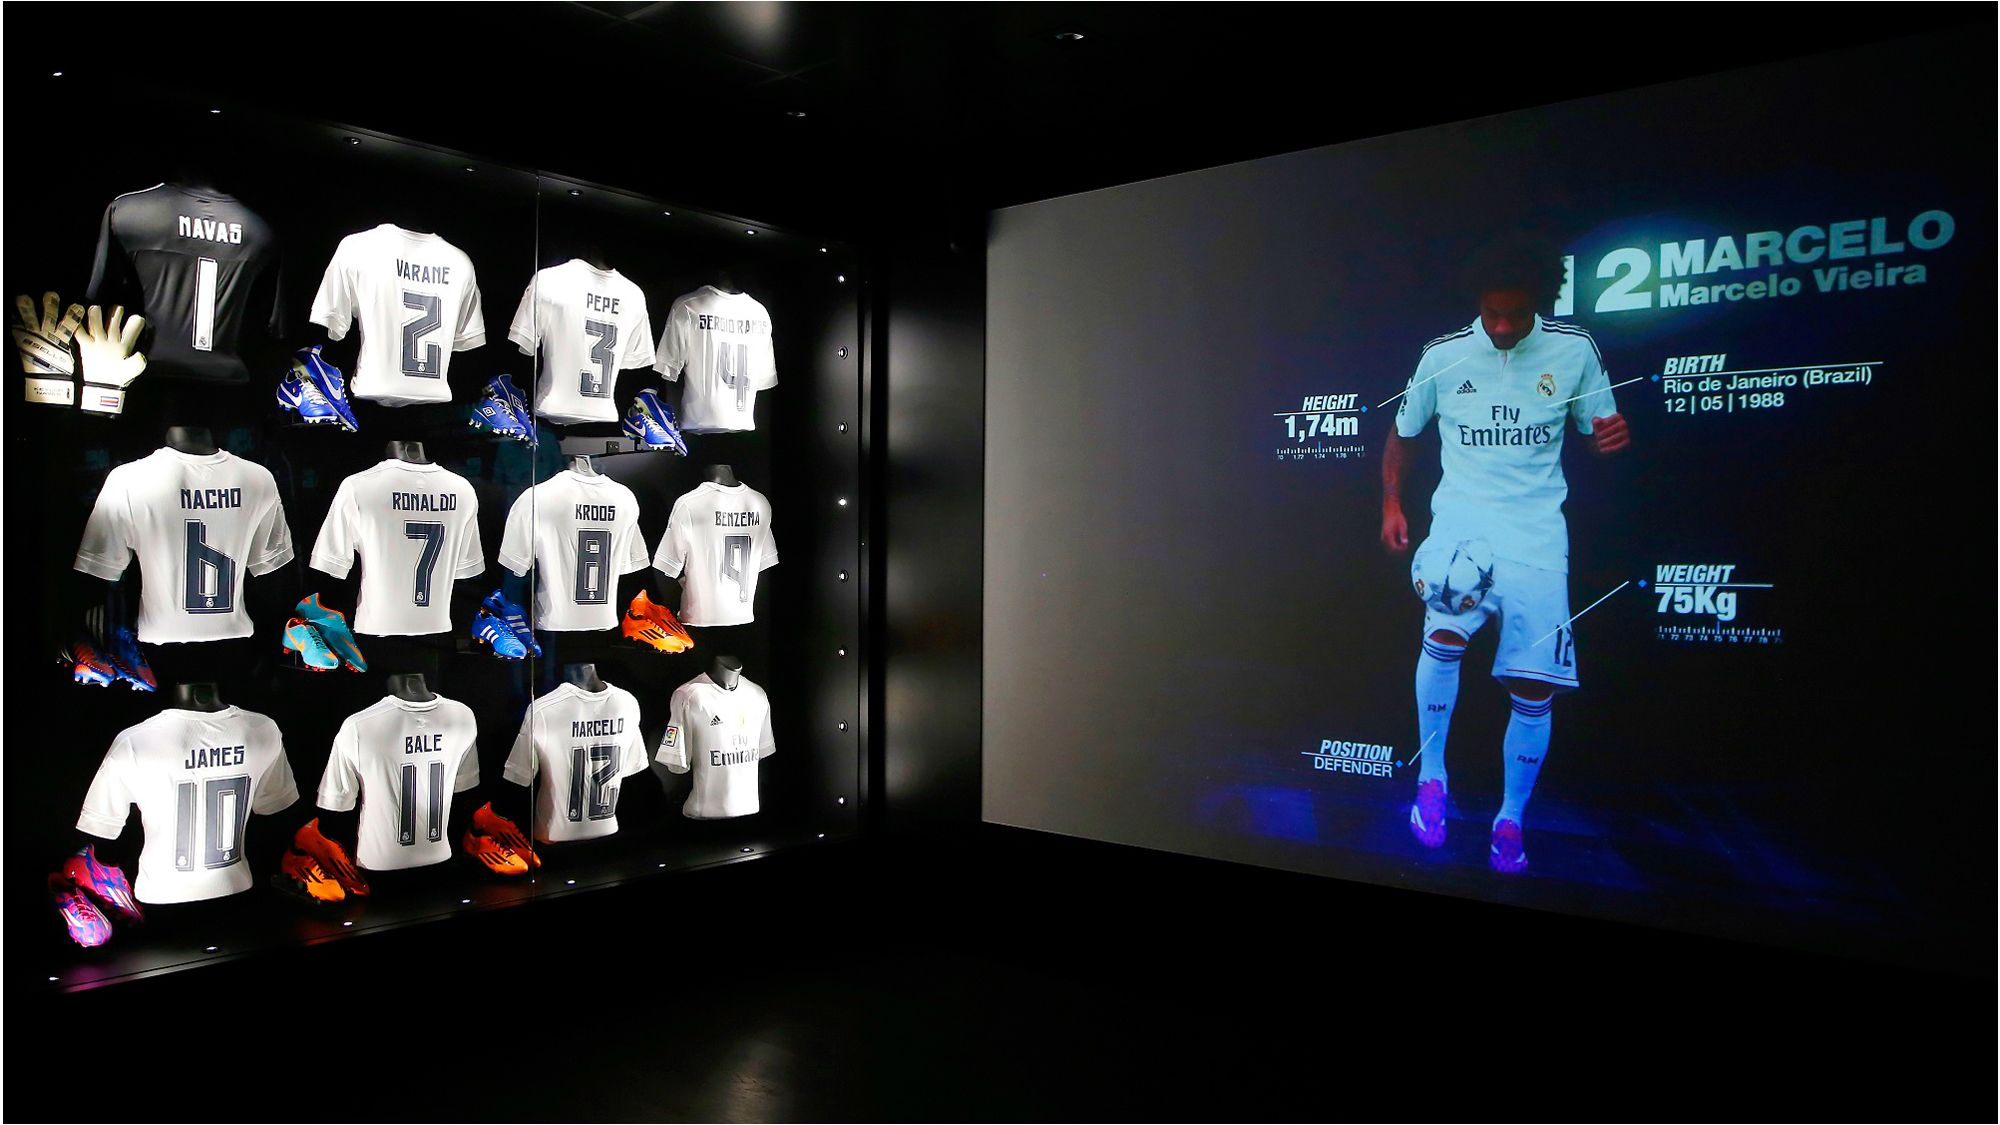 Soccer jerseys and wall graphic of soccer player